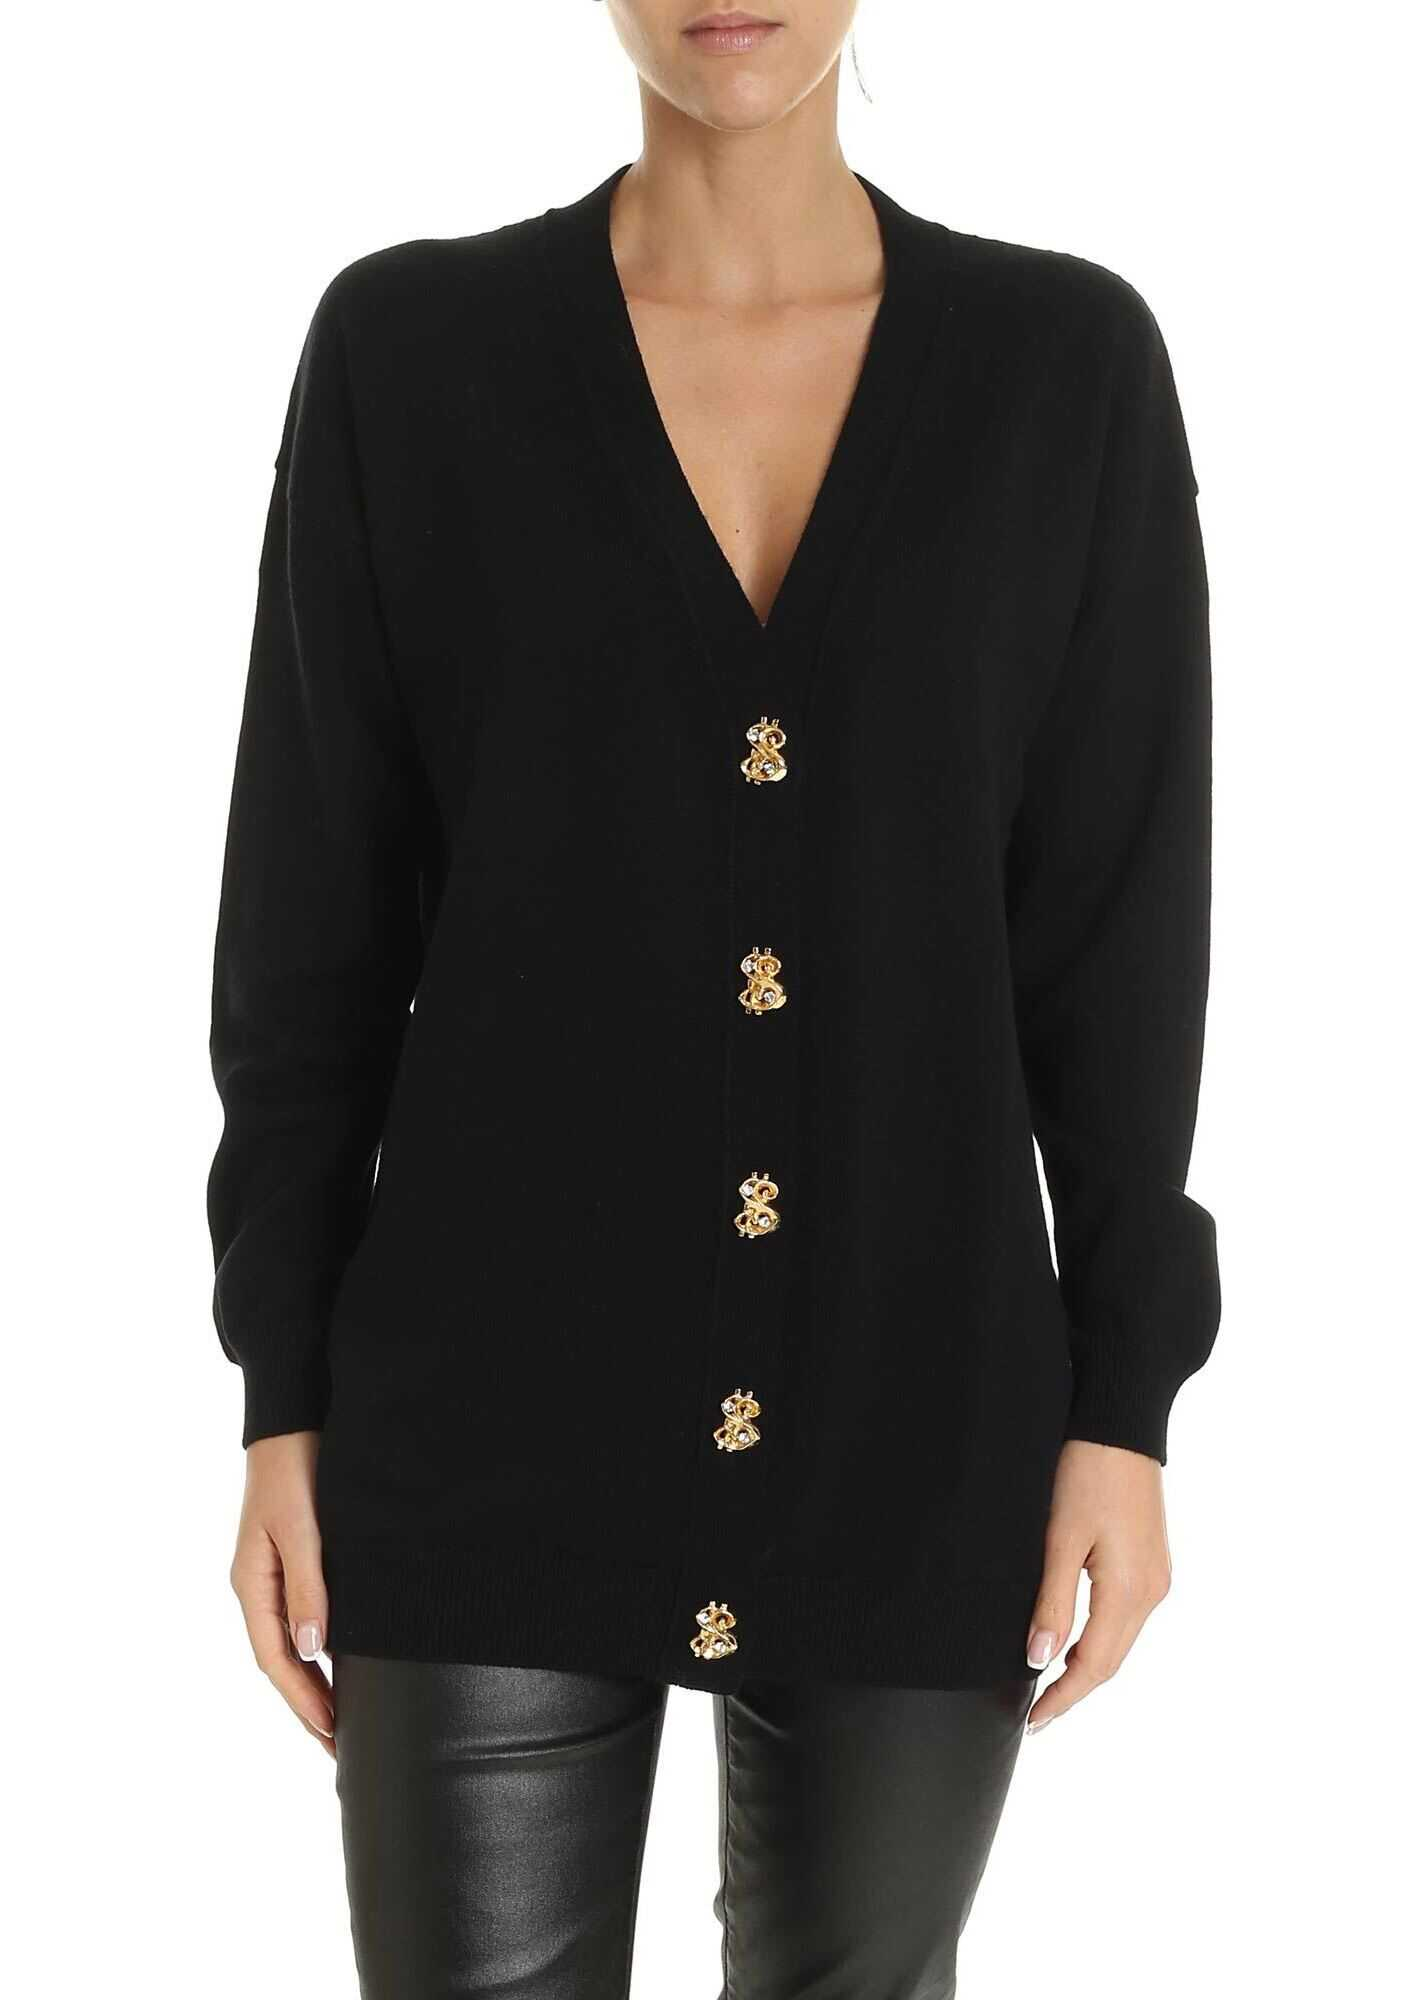 Dollar Buttons Cardigan In Black thumbnail